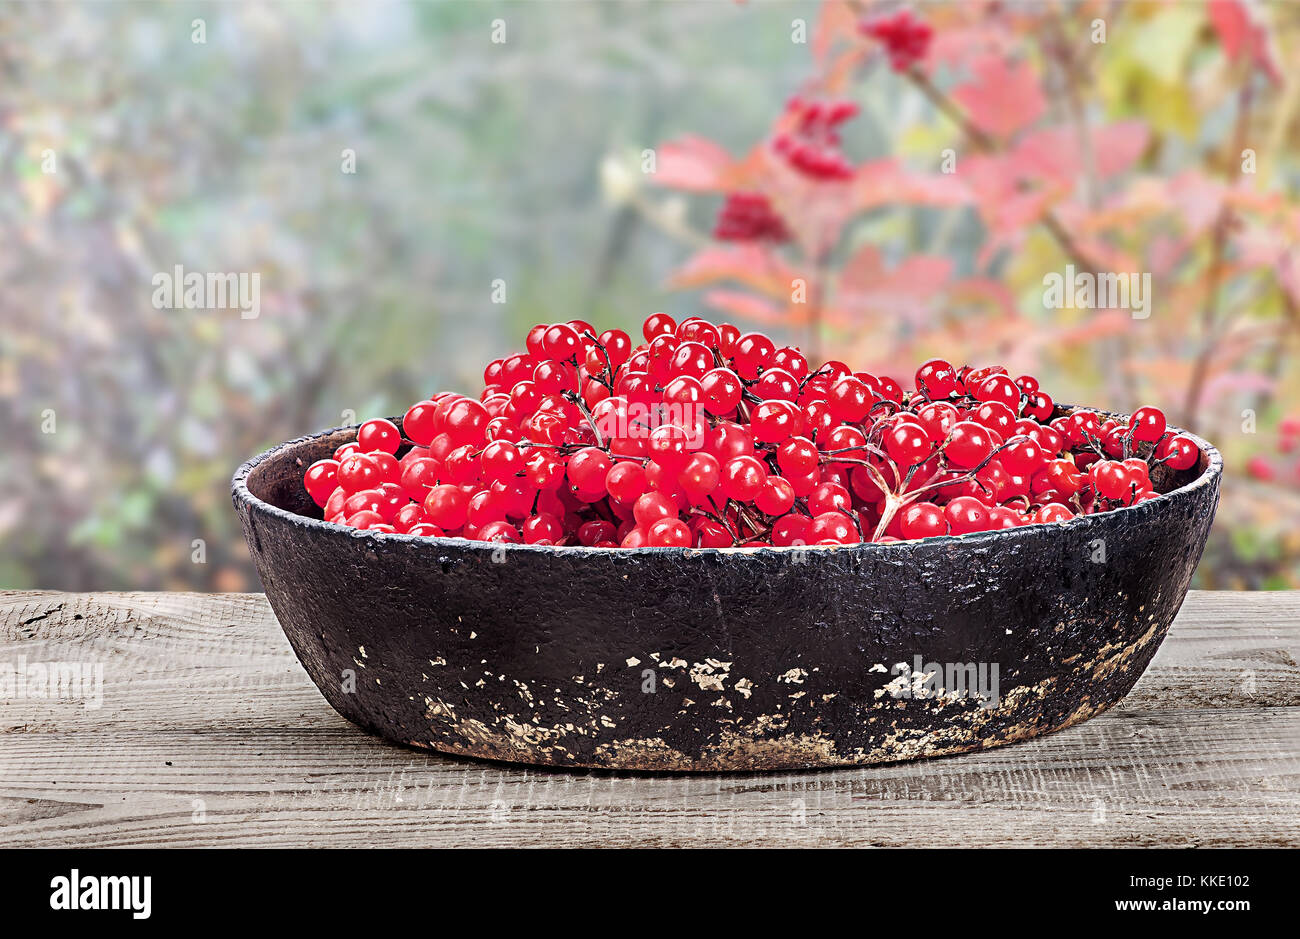 Viburnum in a pan on wooden table - Stock Image